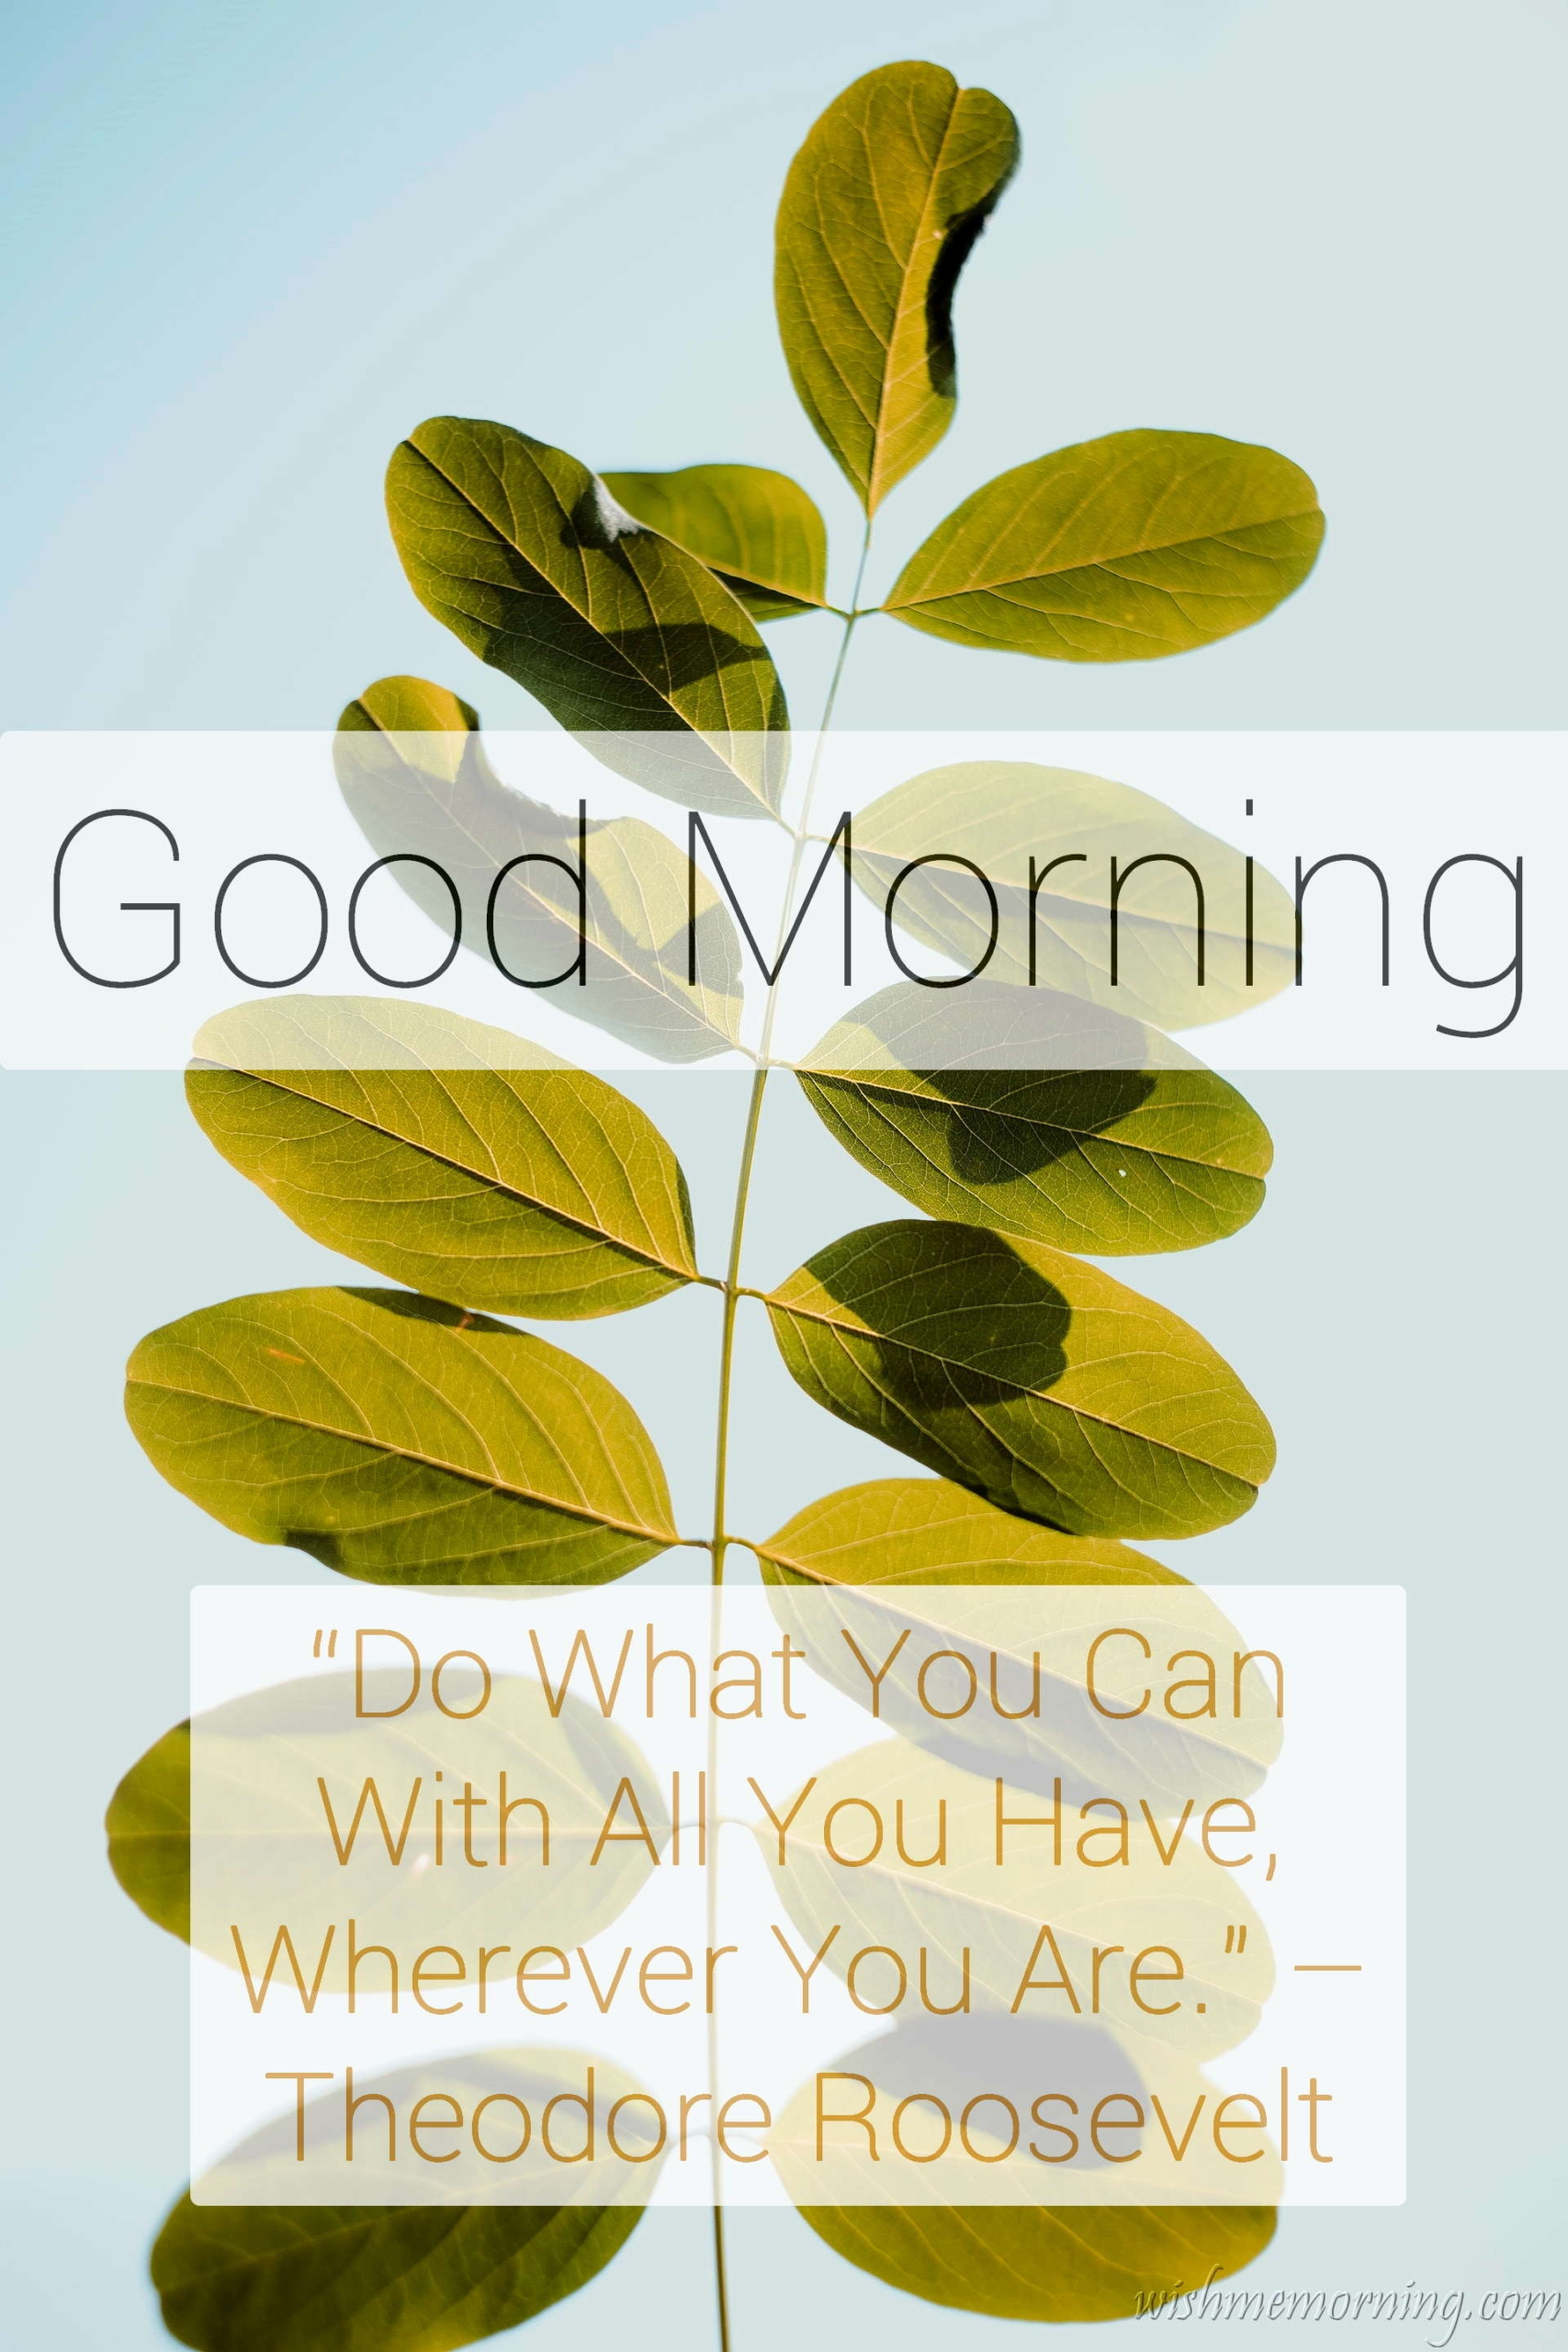 Good Morning Quote Theodore Roosevelt Plants Background